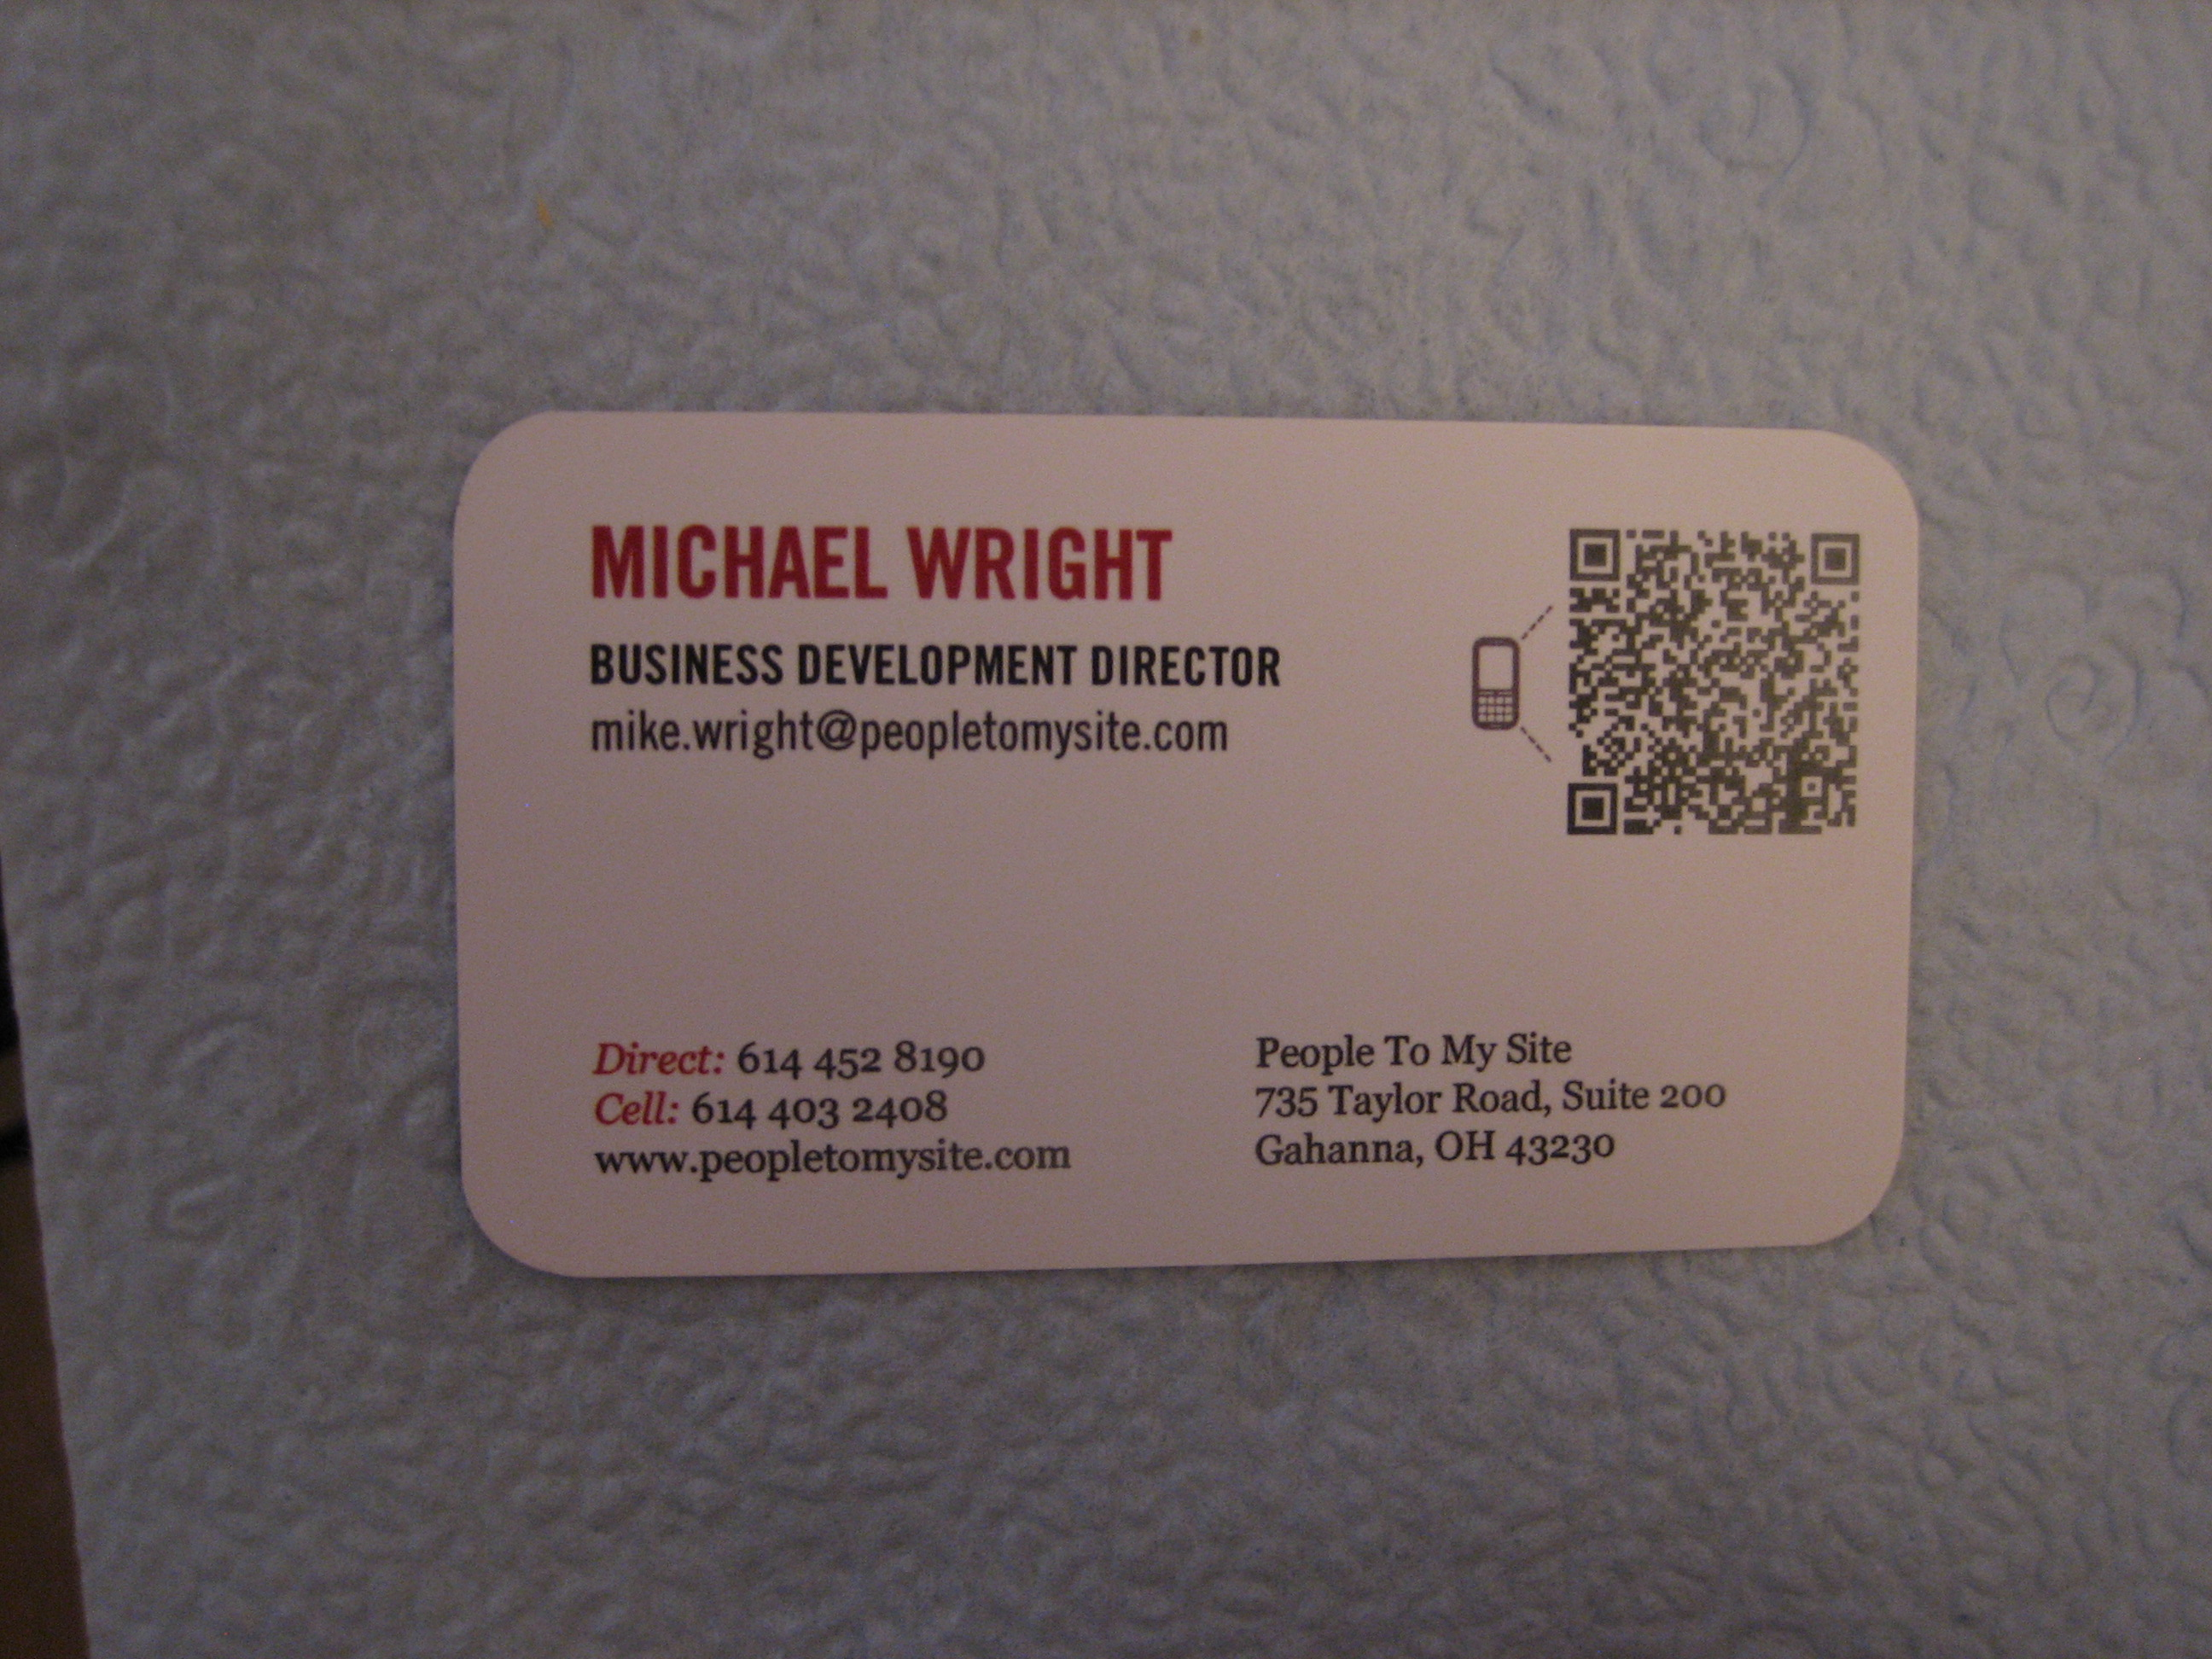 Qr codes deb consulting executive debce for Create qr code business card